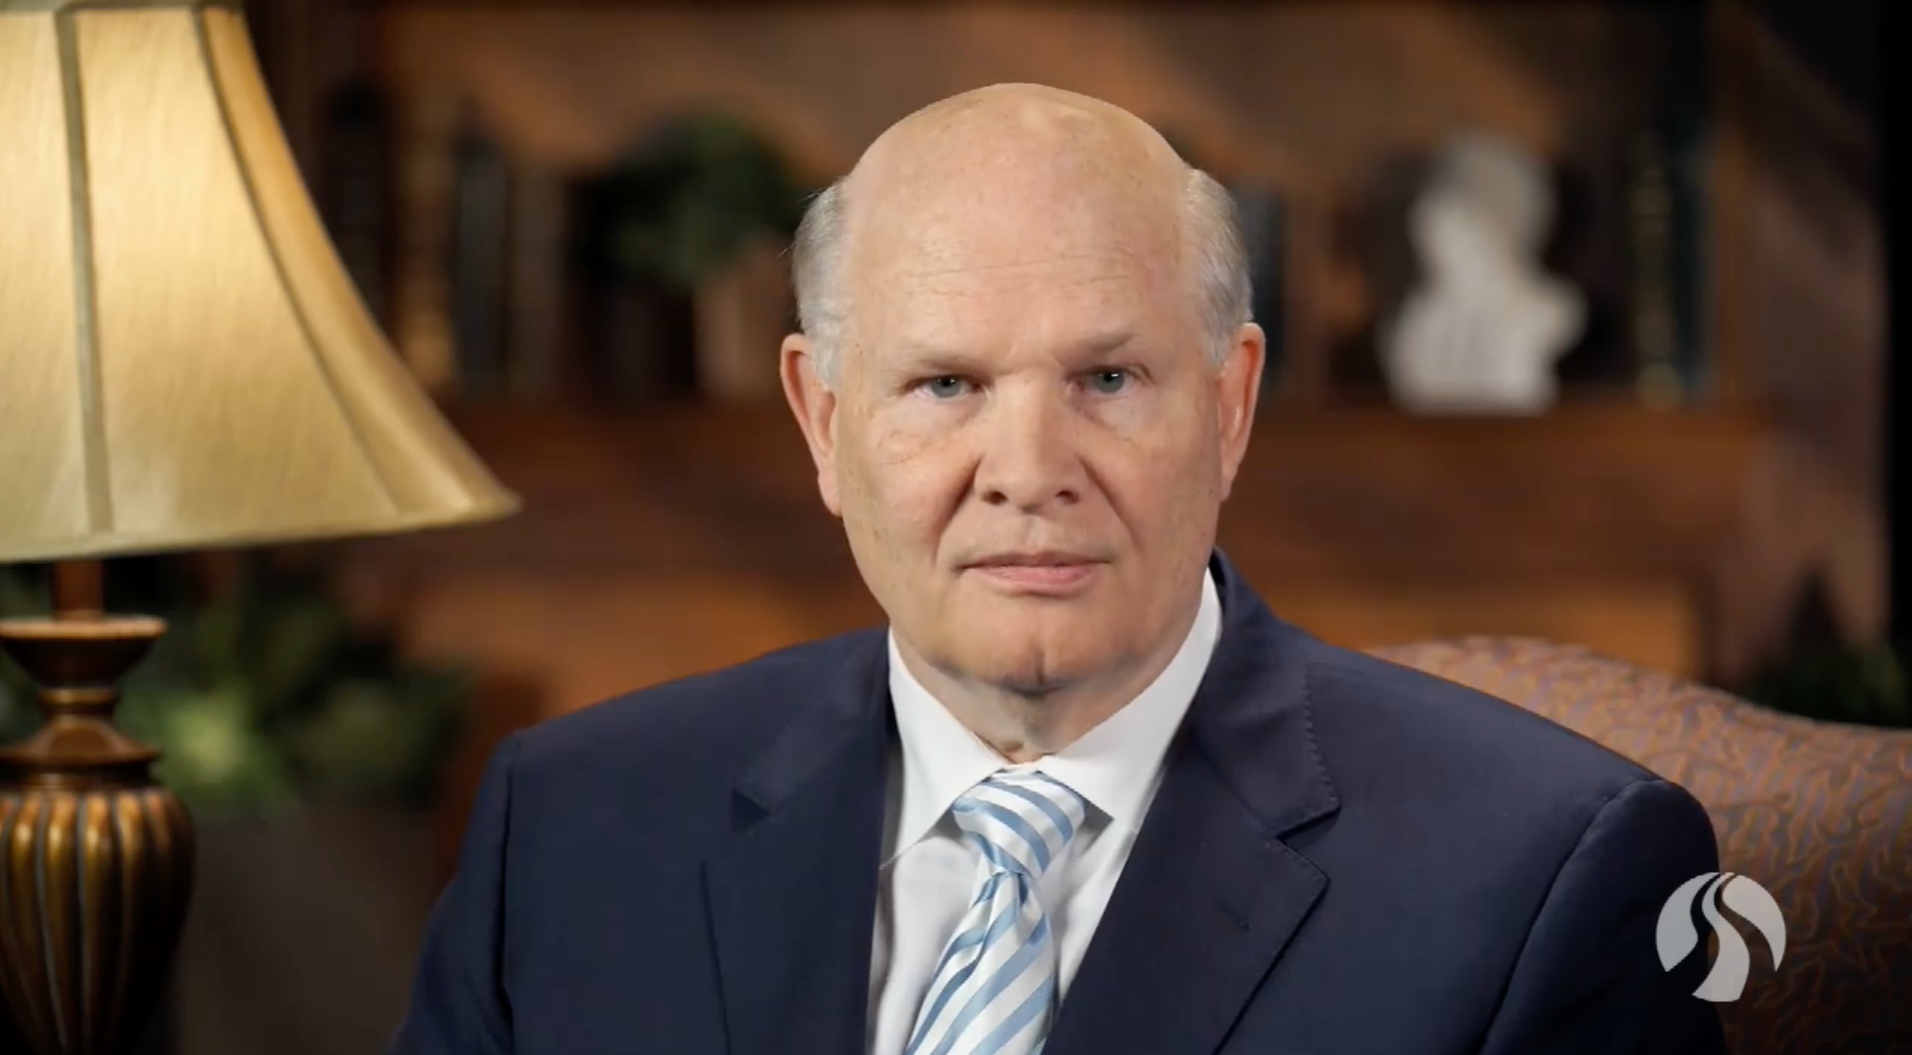 Elder Dale G. Renlund shared a message with BYU-Pathway Worldwide students during a devotional streamed via the internet on April 2.